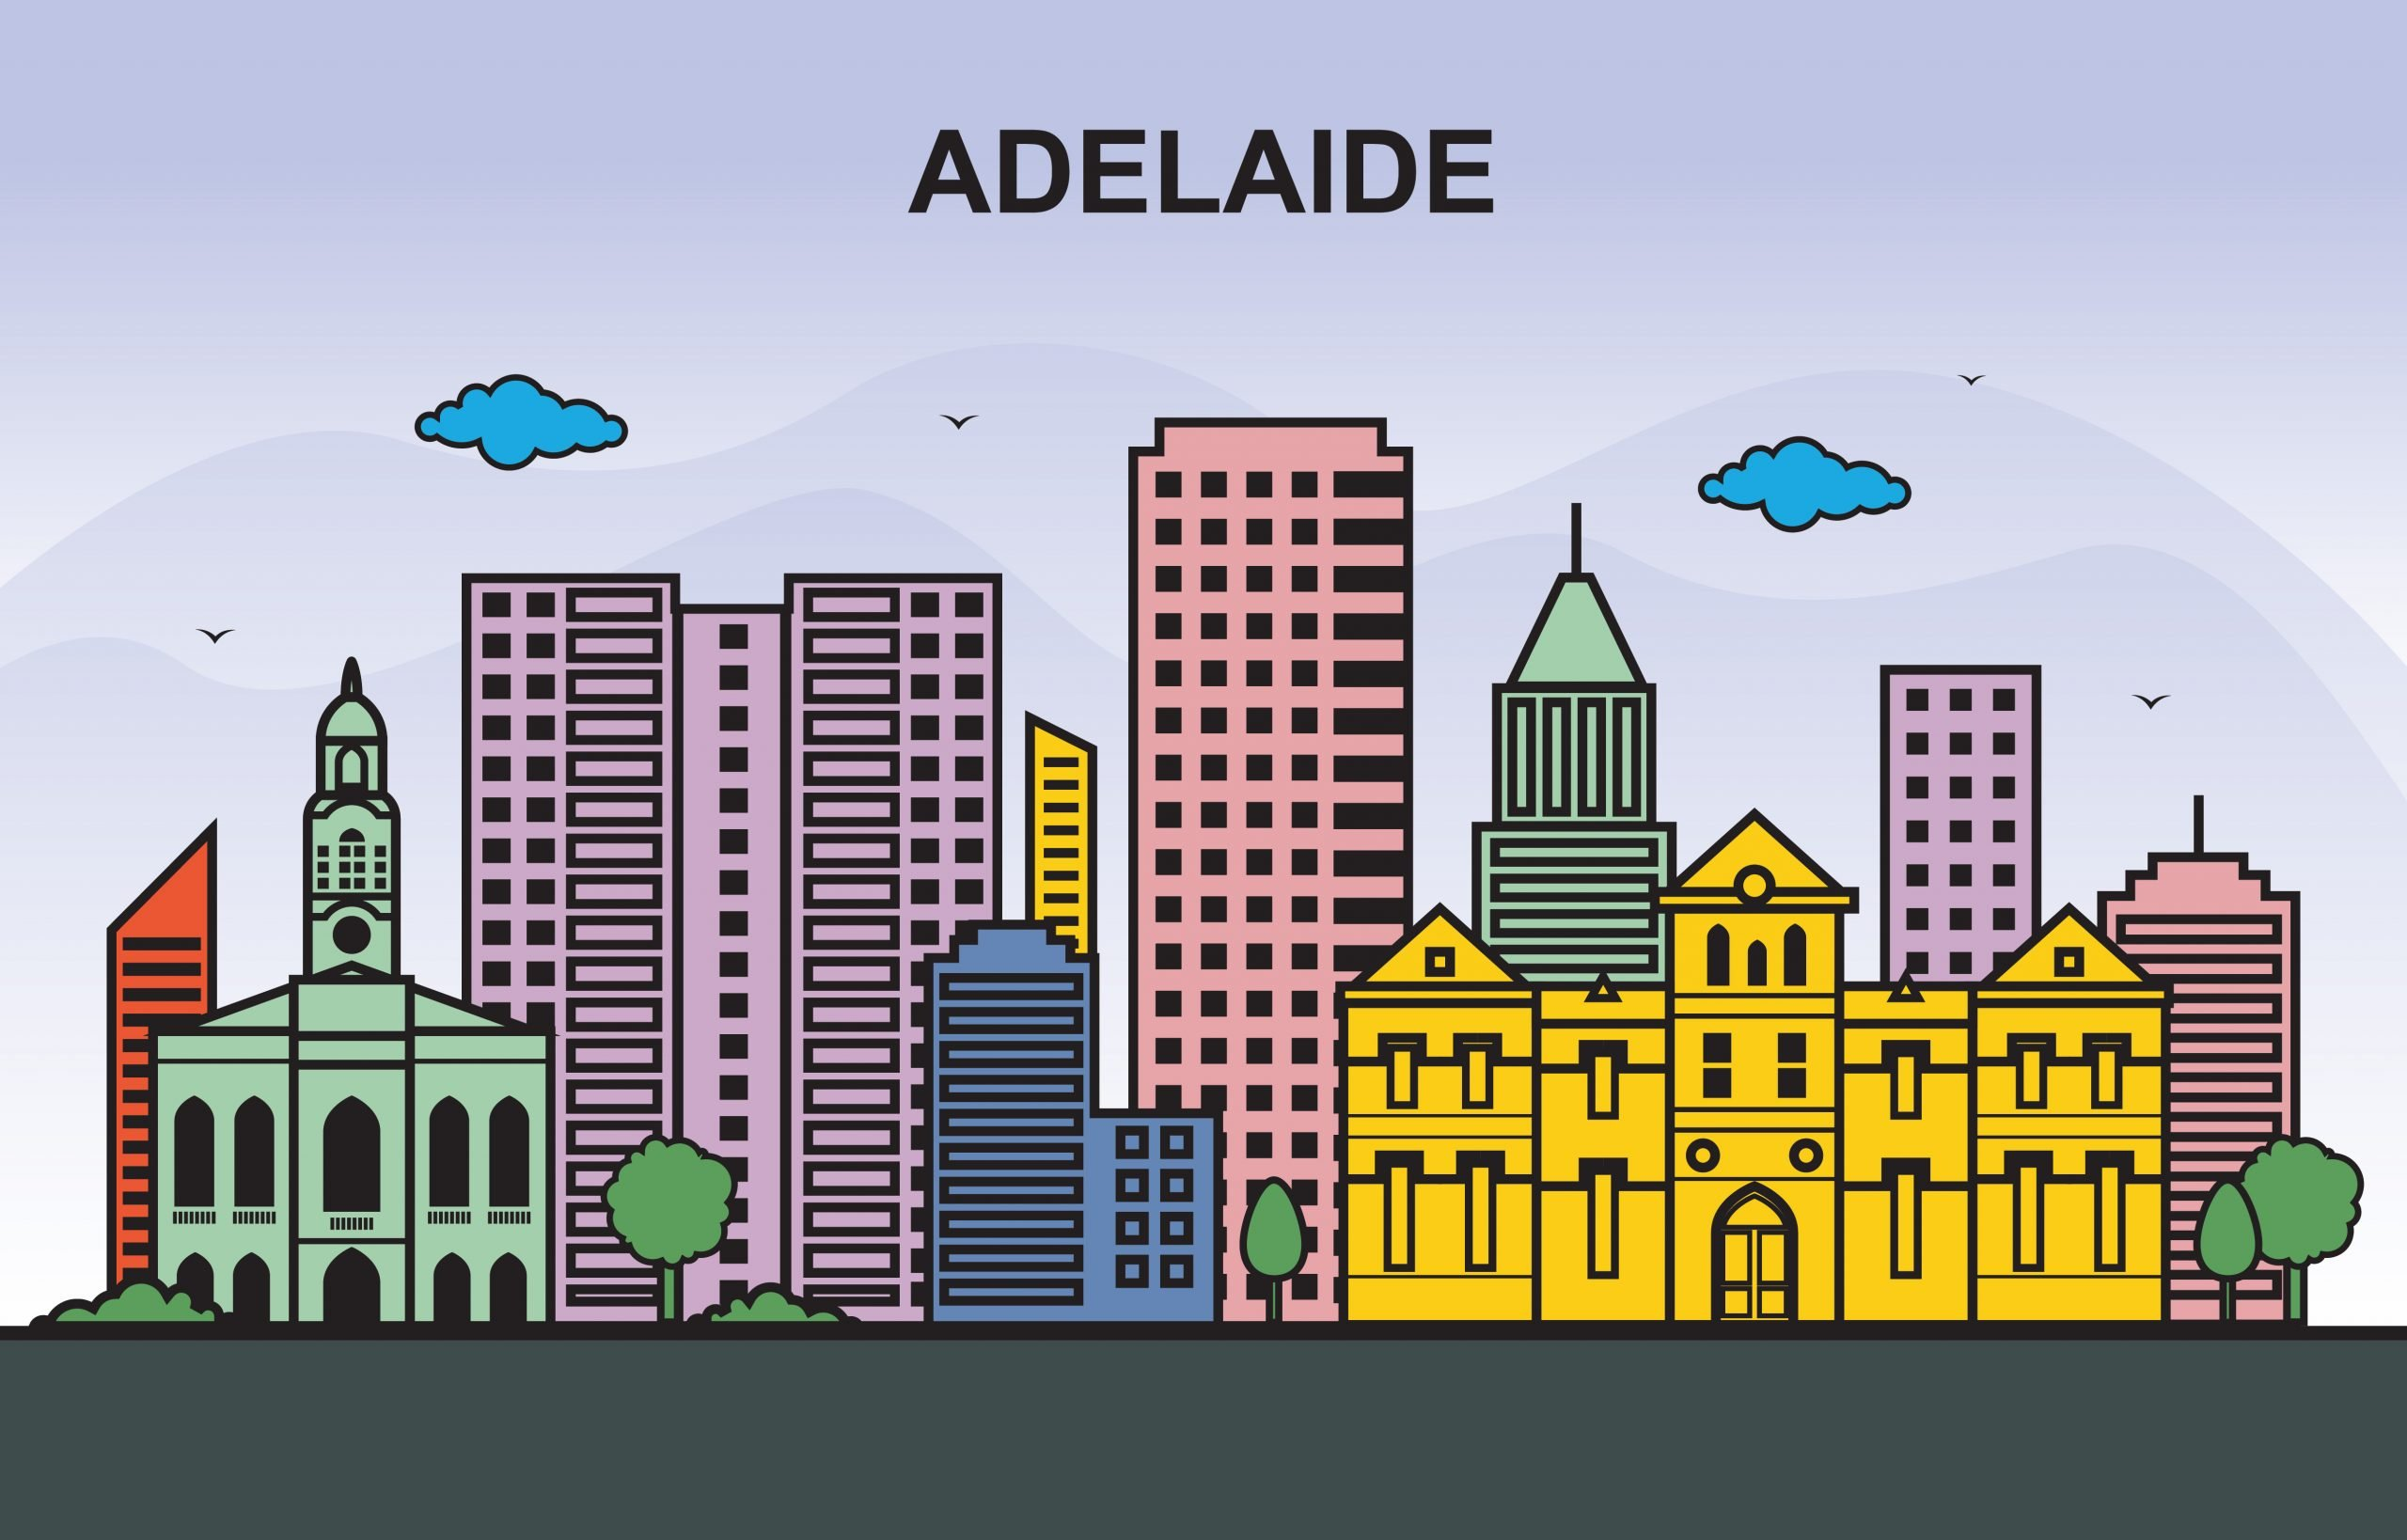 7 Seven reasons why adelaide?